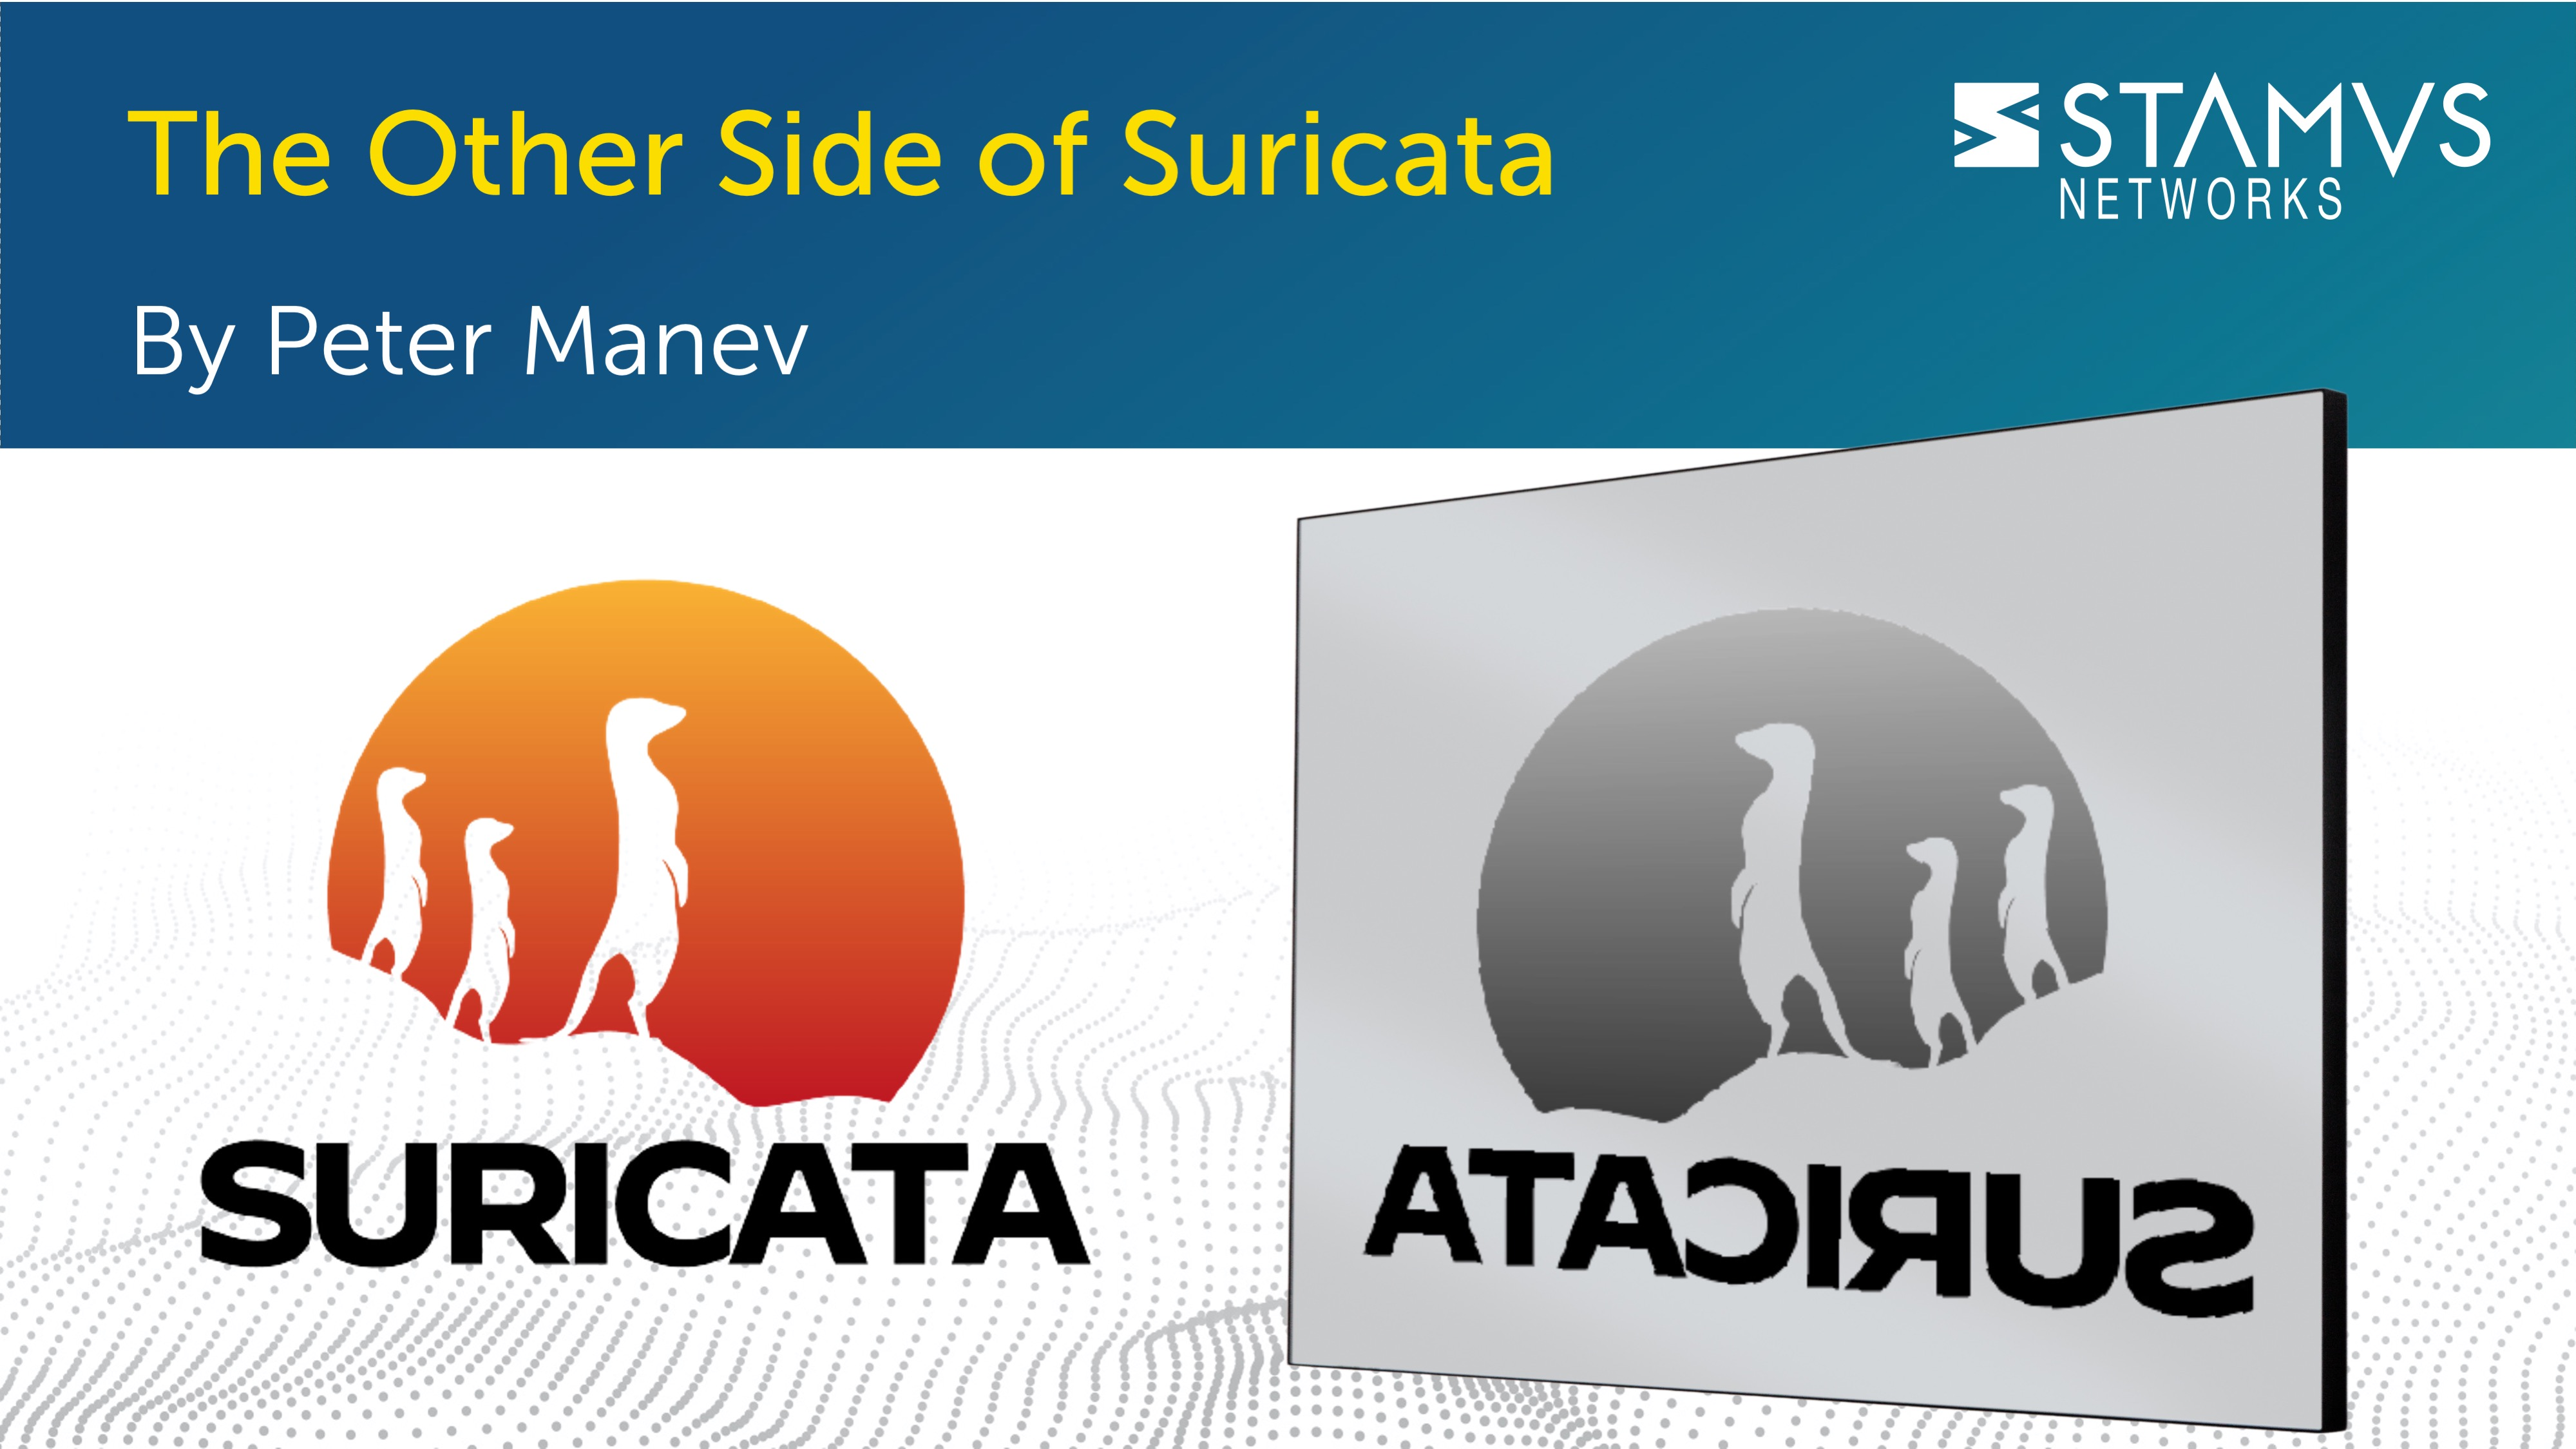 Stamus Networks | The Other Side of Suricata